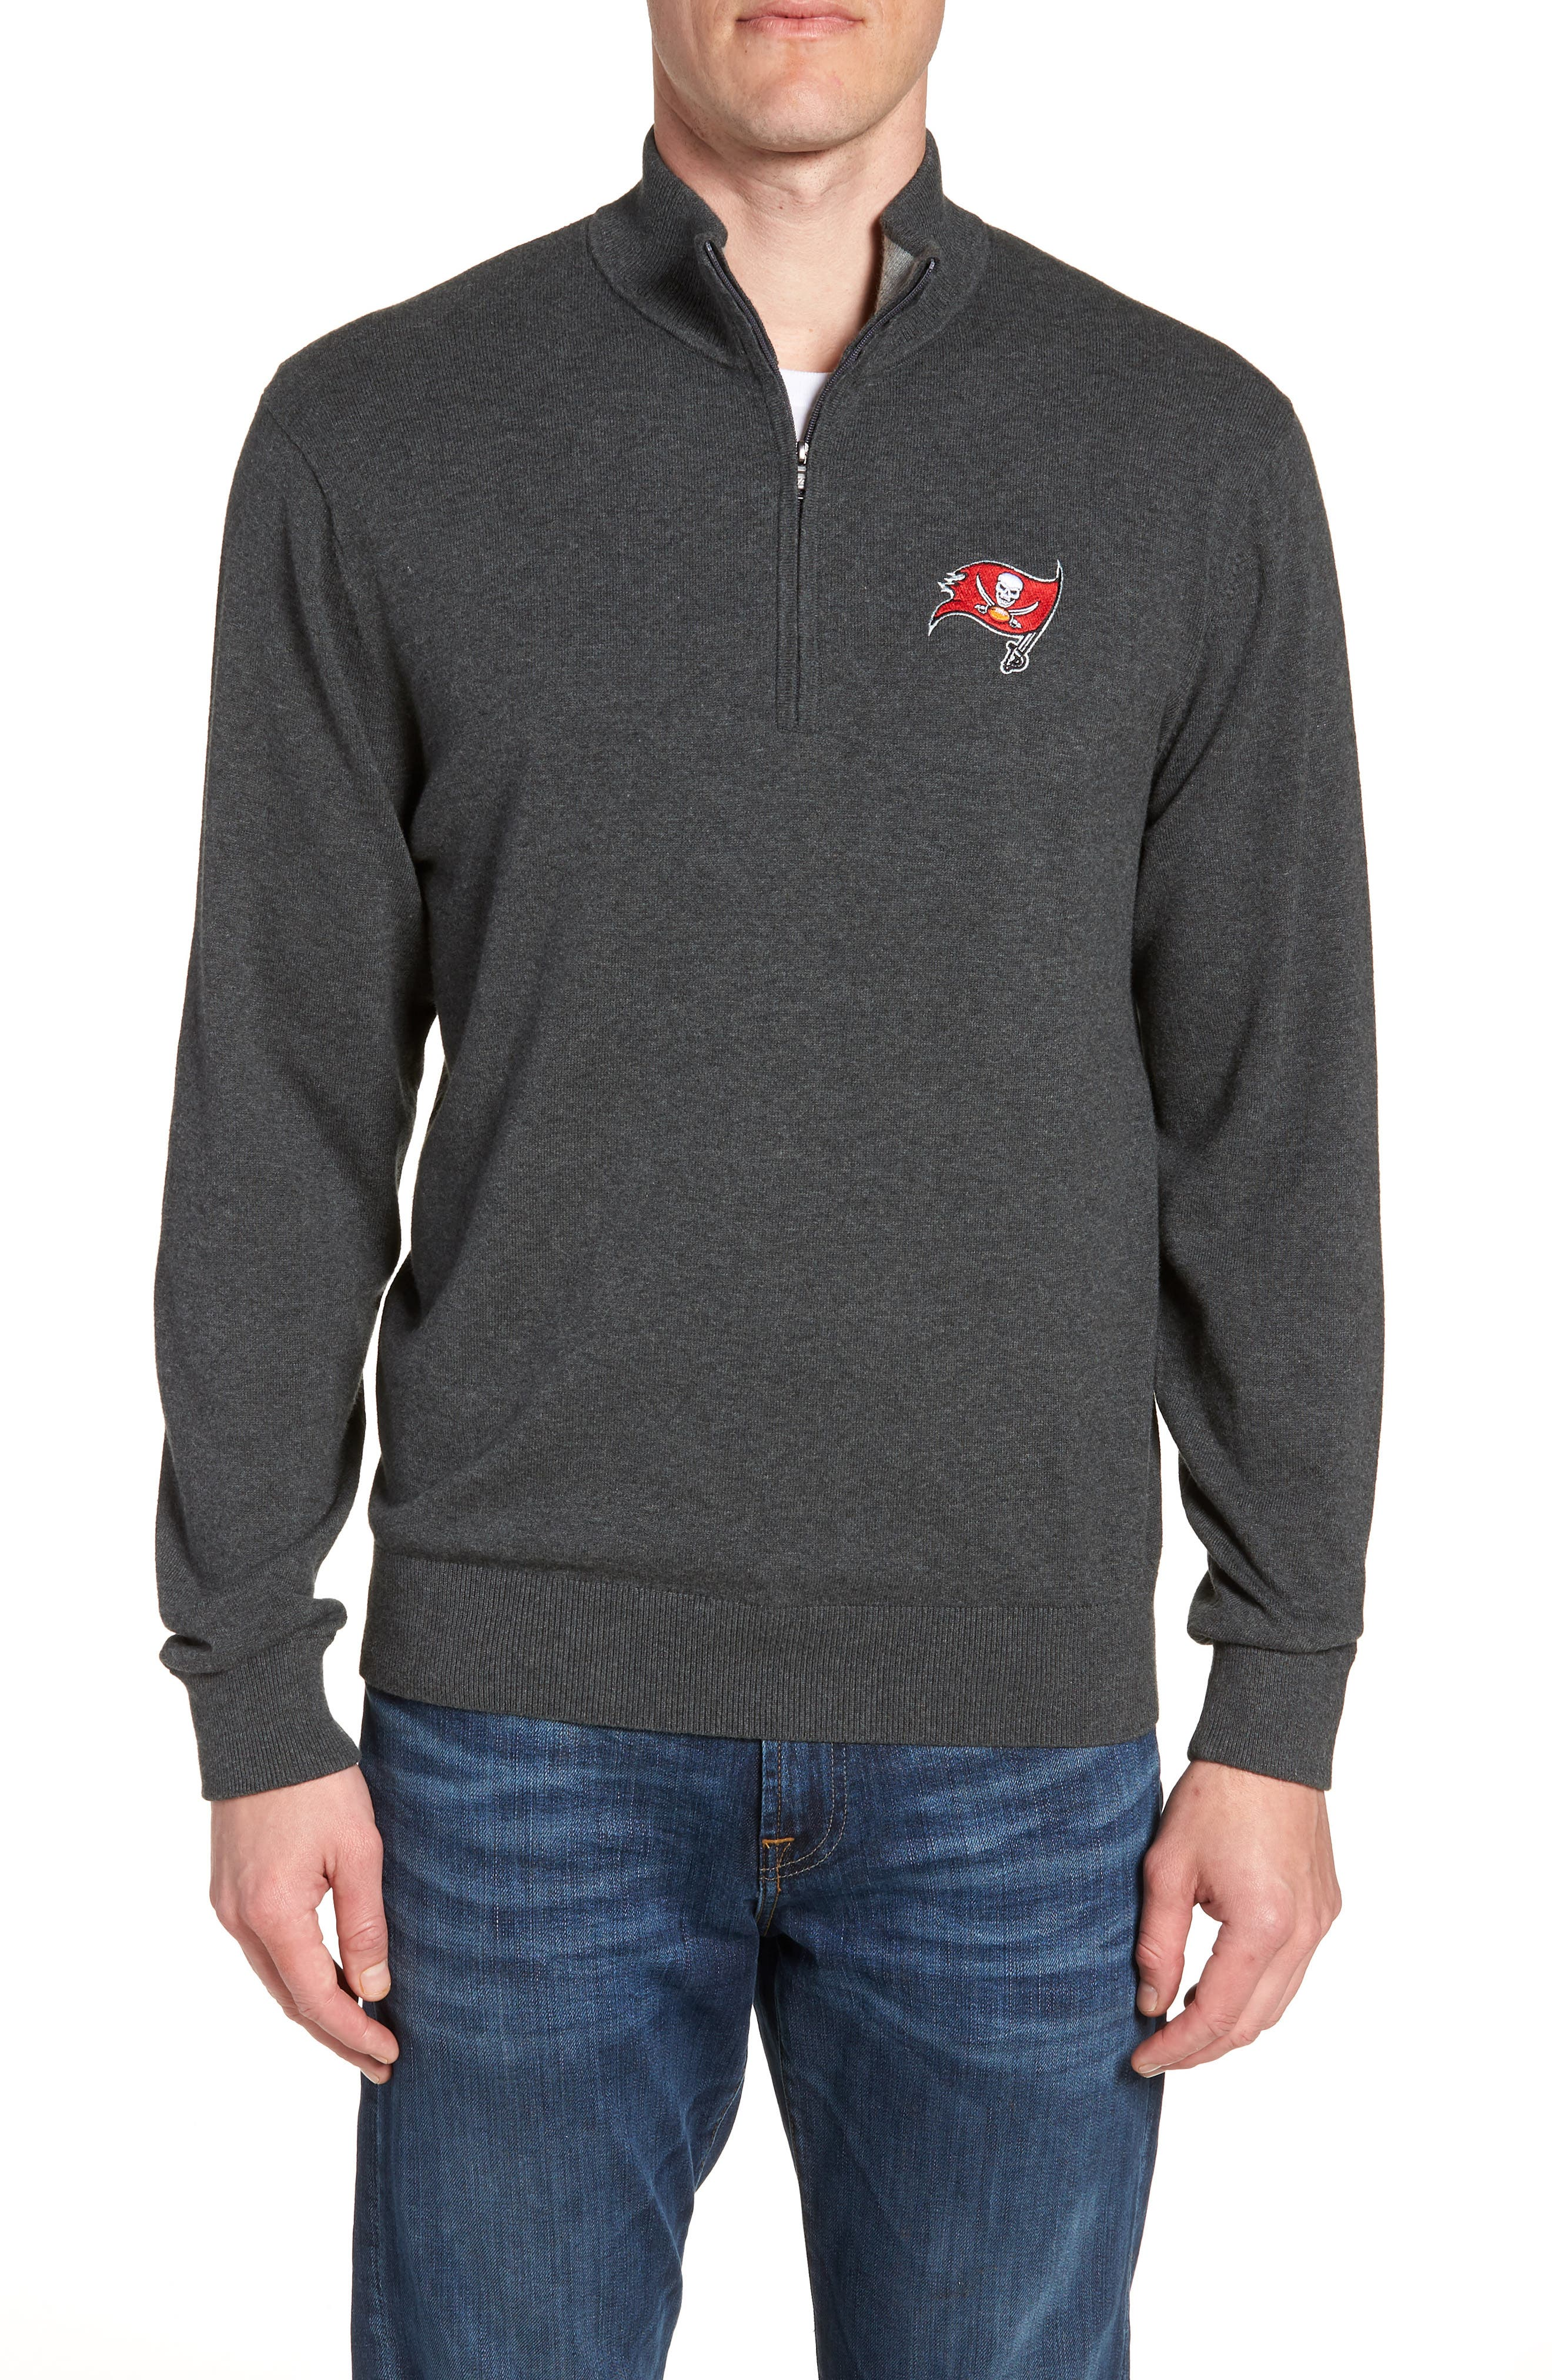 Tampa Bay Buccaneers - Lakemont Regular Fit Quarter Zip Sweater,                             Main thumbnail 1, color,                             CHARCOAL HEATHER